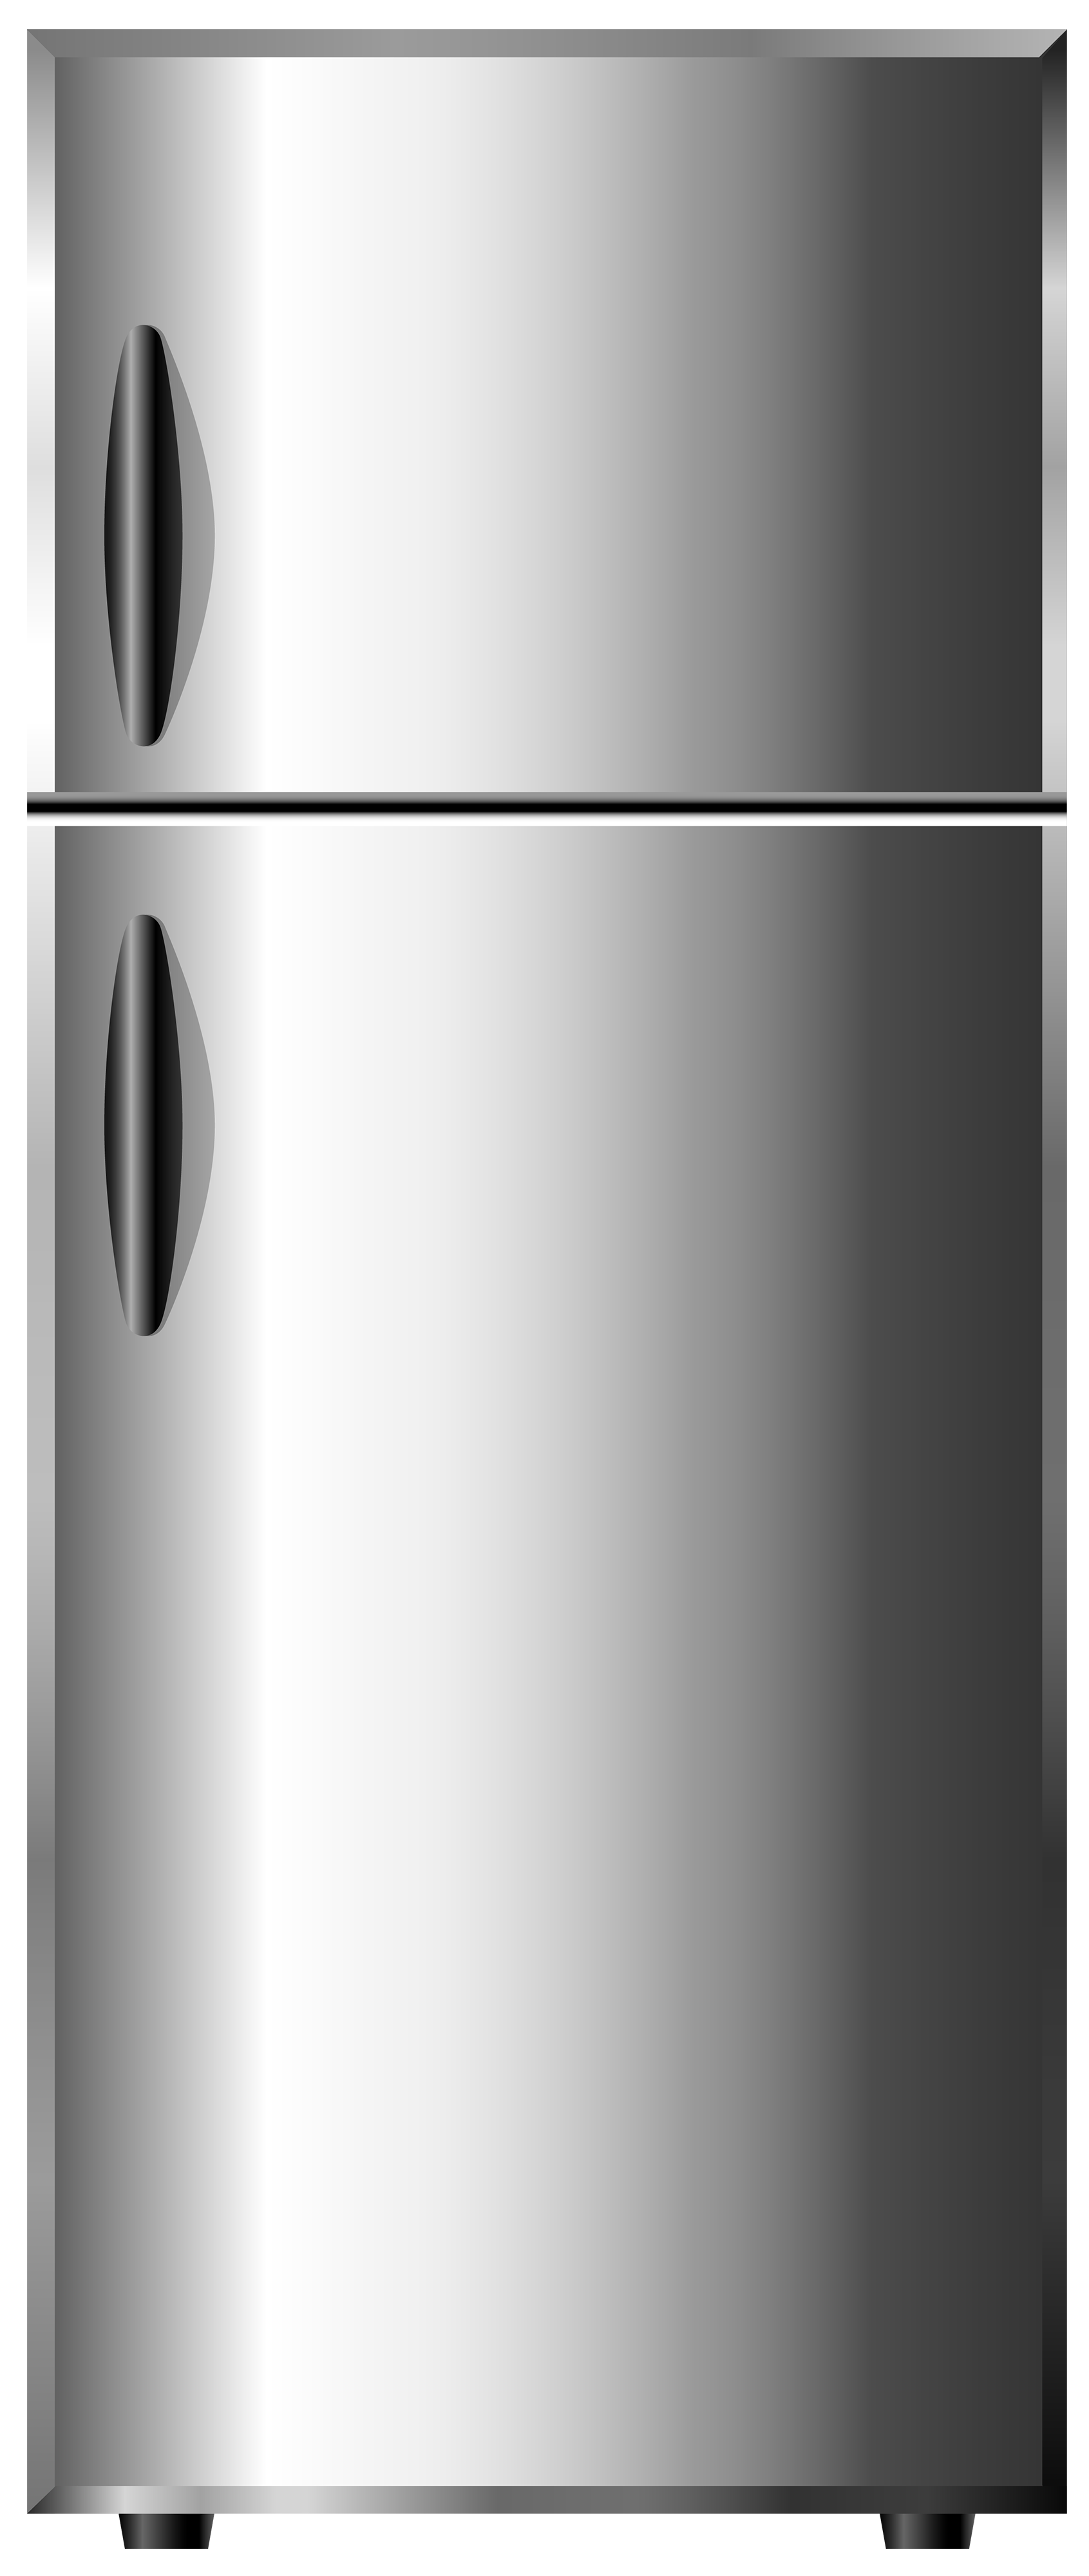 Refrigerator clipart. Png best web